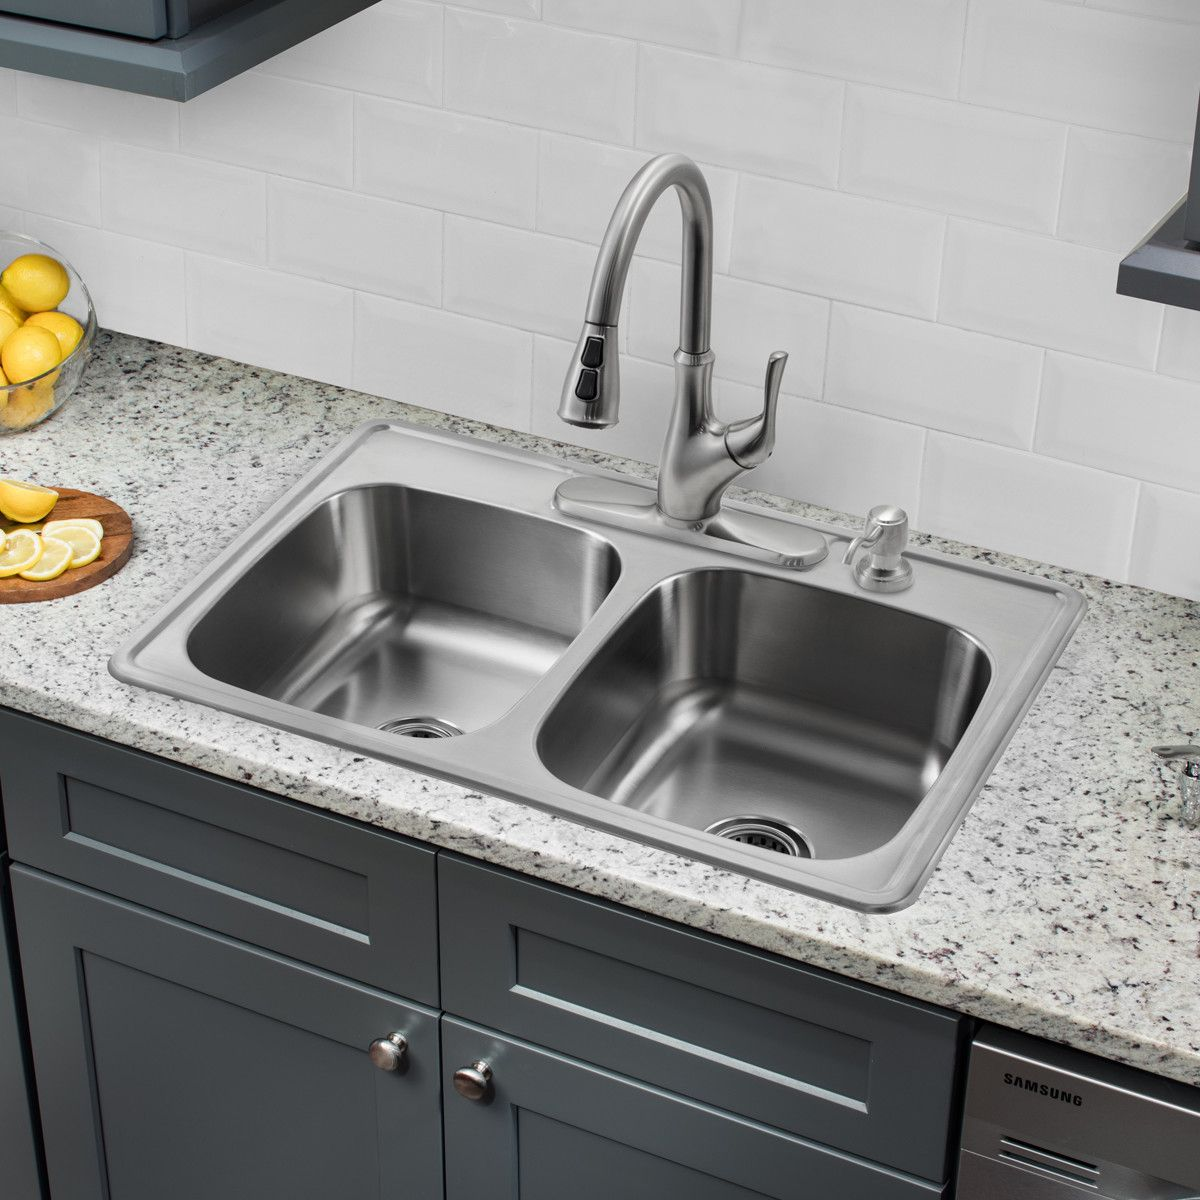 stainless steel kitchen sinks 33 x 22 wood cart quot double bowl drop in sink